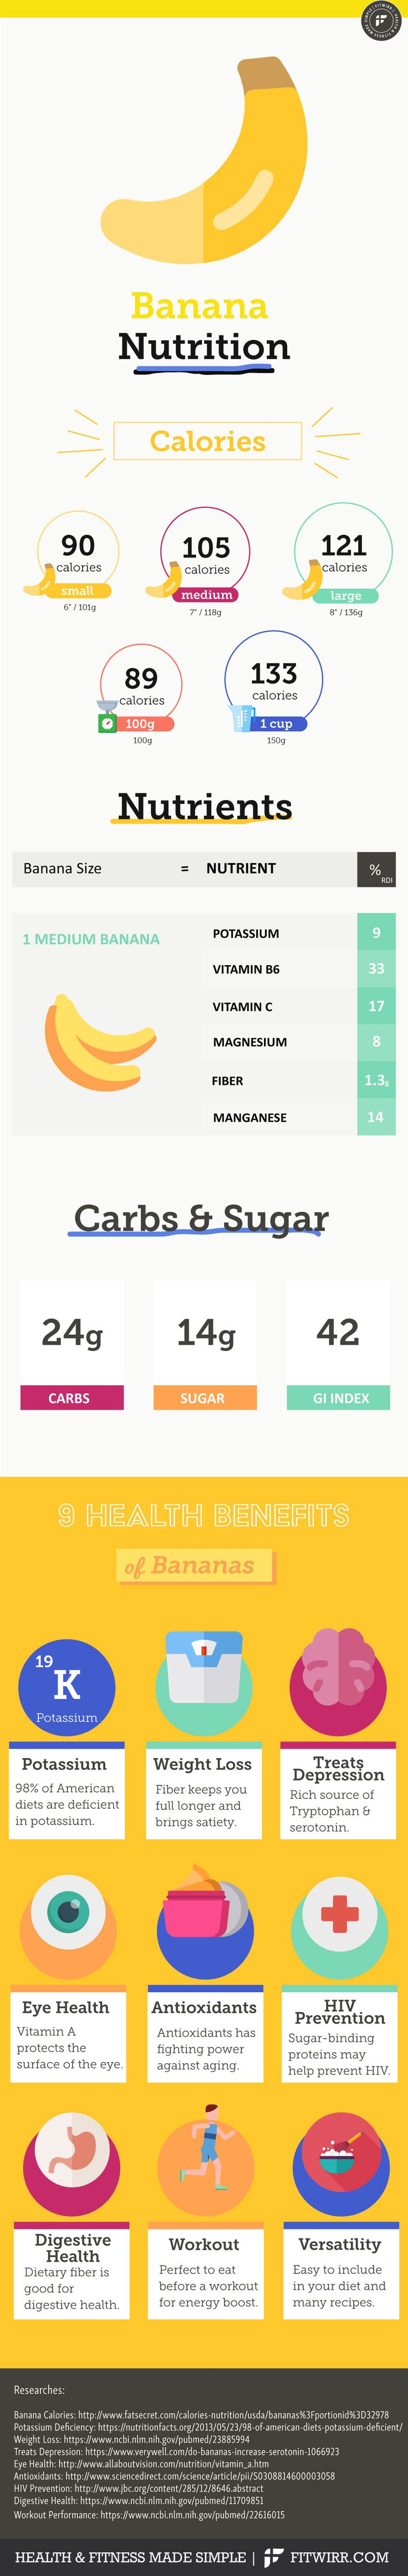 Banana calories, nutrition facts and benefits